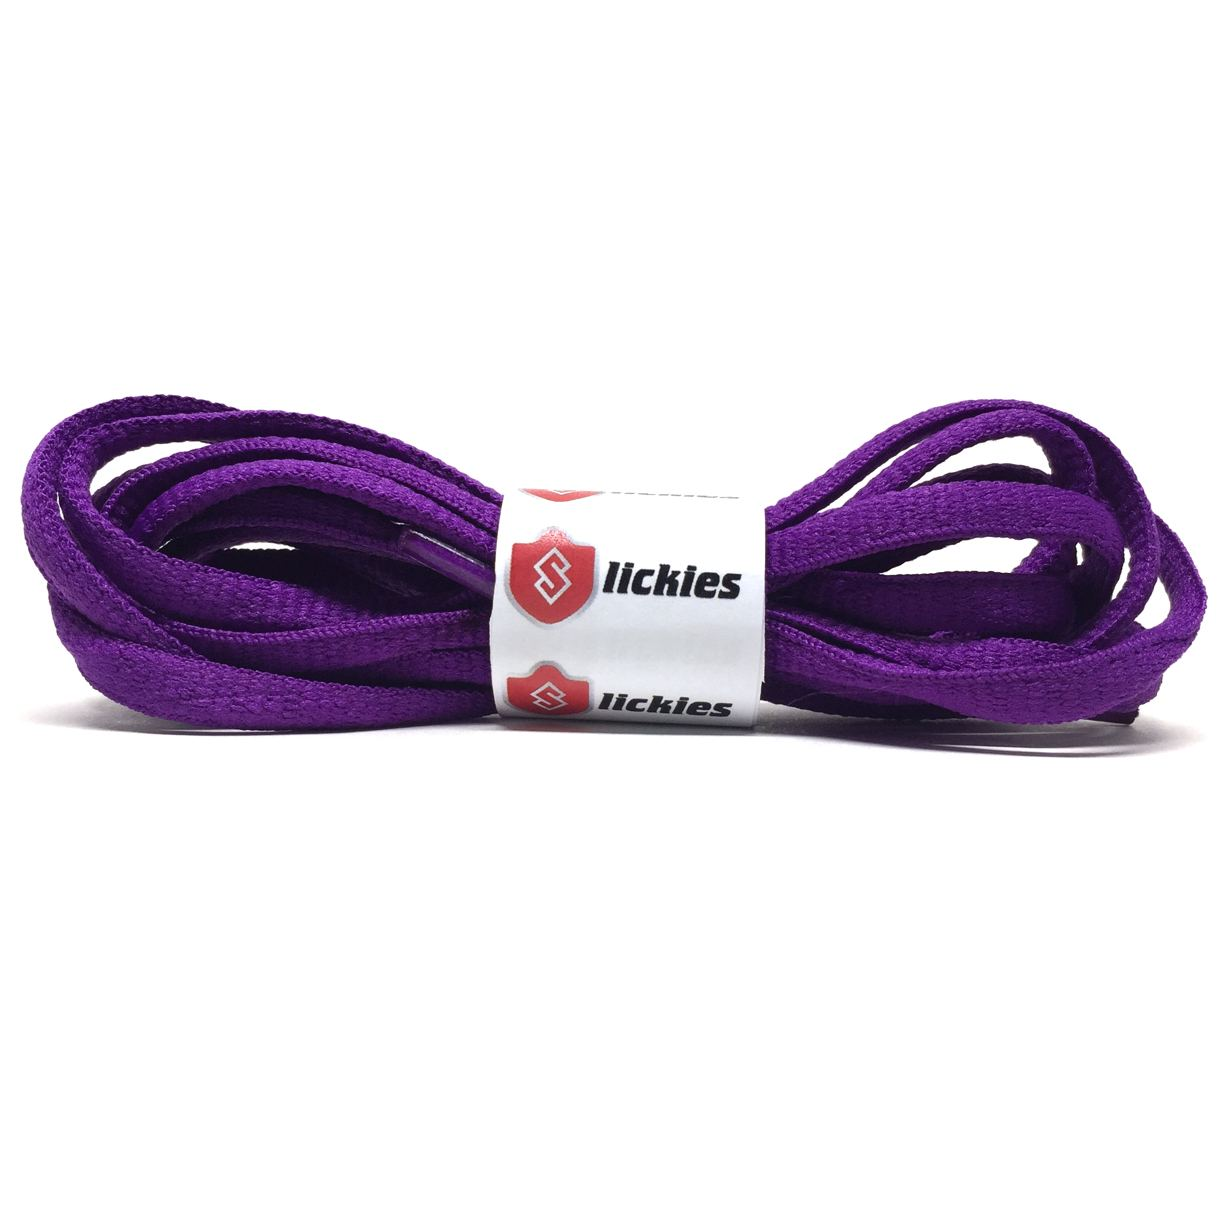 8ee1d0594abef BASICS Oval Laces - Purple - Slickies